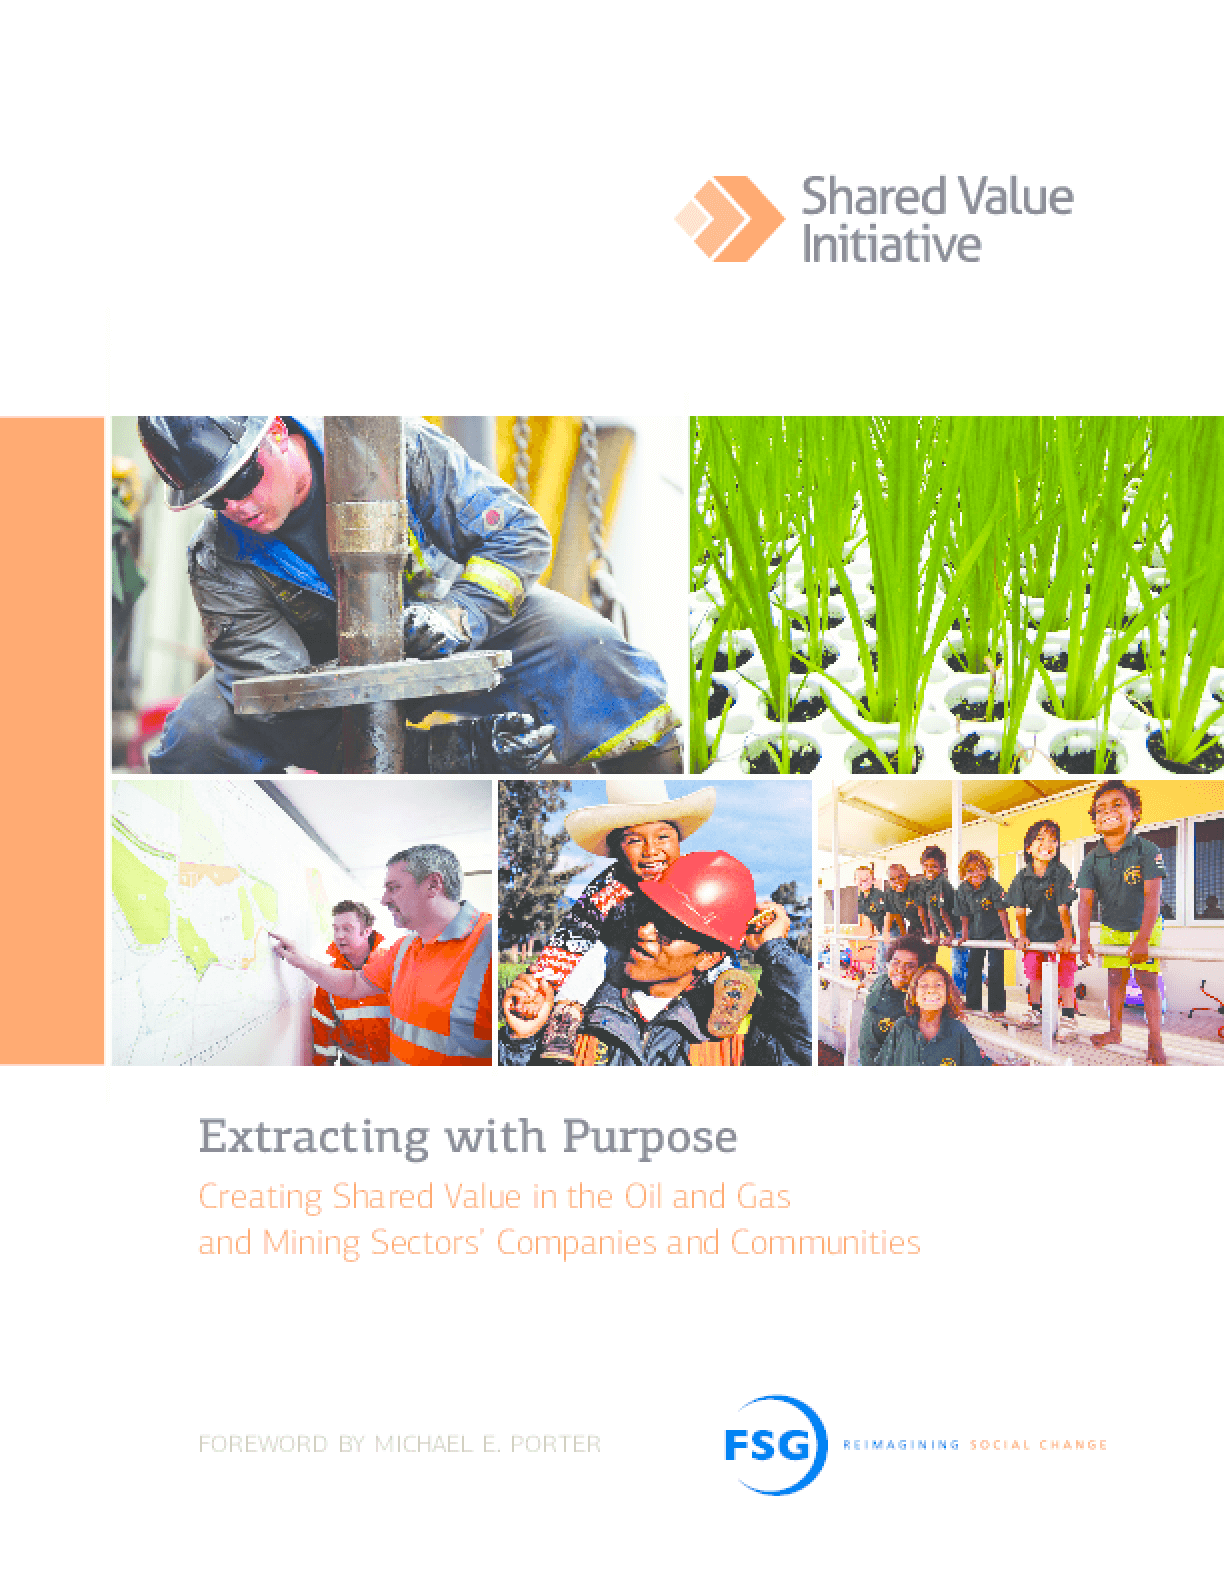 Extracting with Purpose: Creating Shared Value in the Oil and Gas and Mining Sectors' Companies and Communities